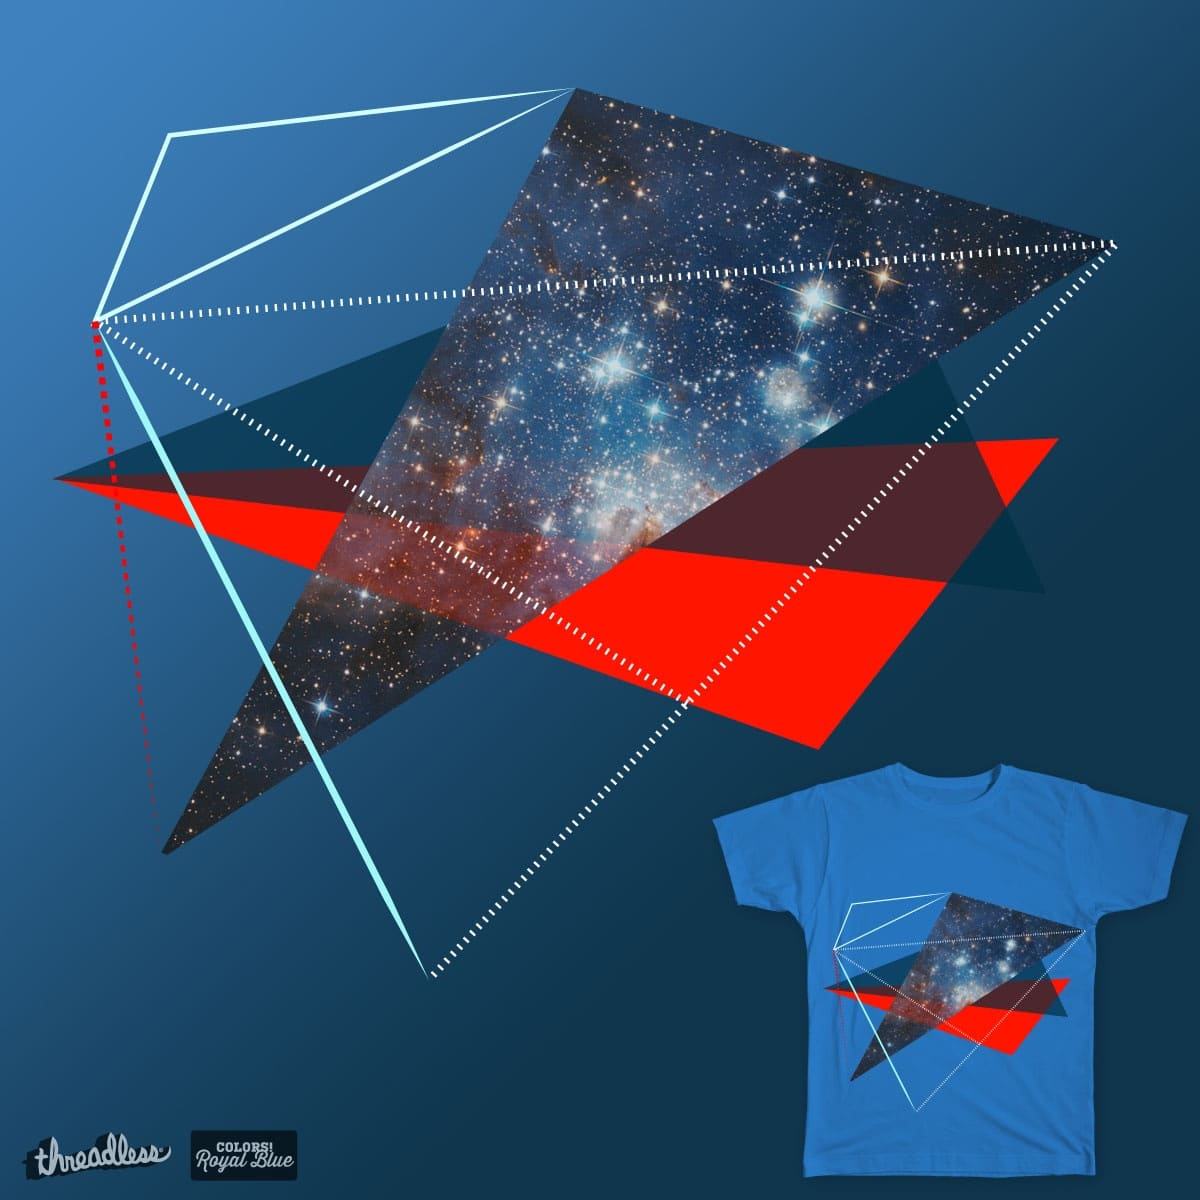 Space zone by Parin on Threadless